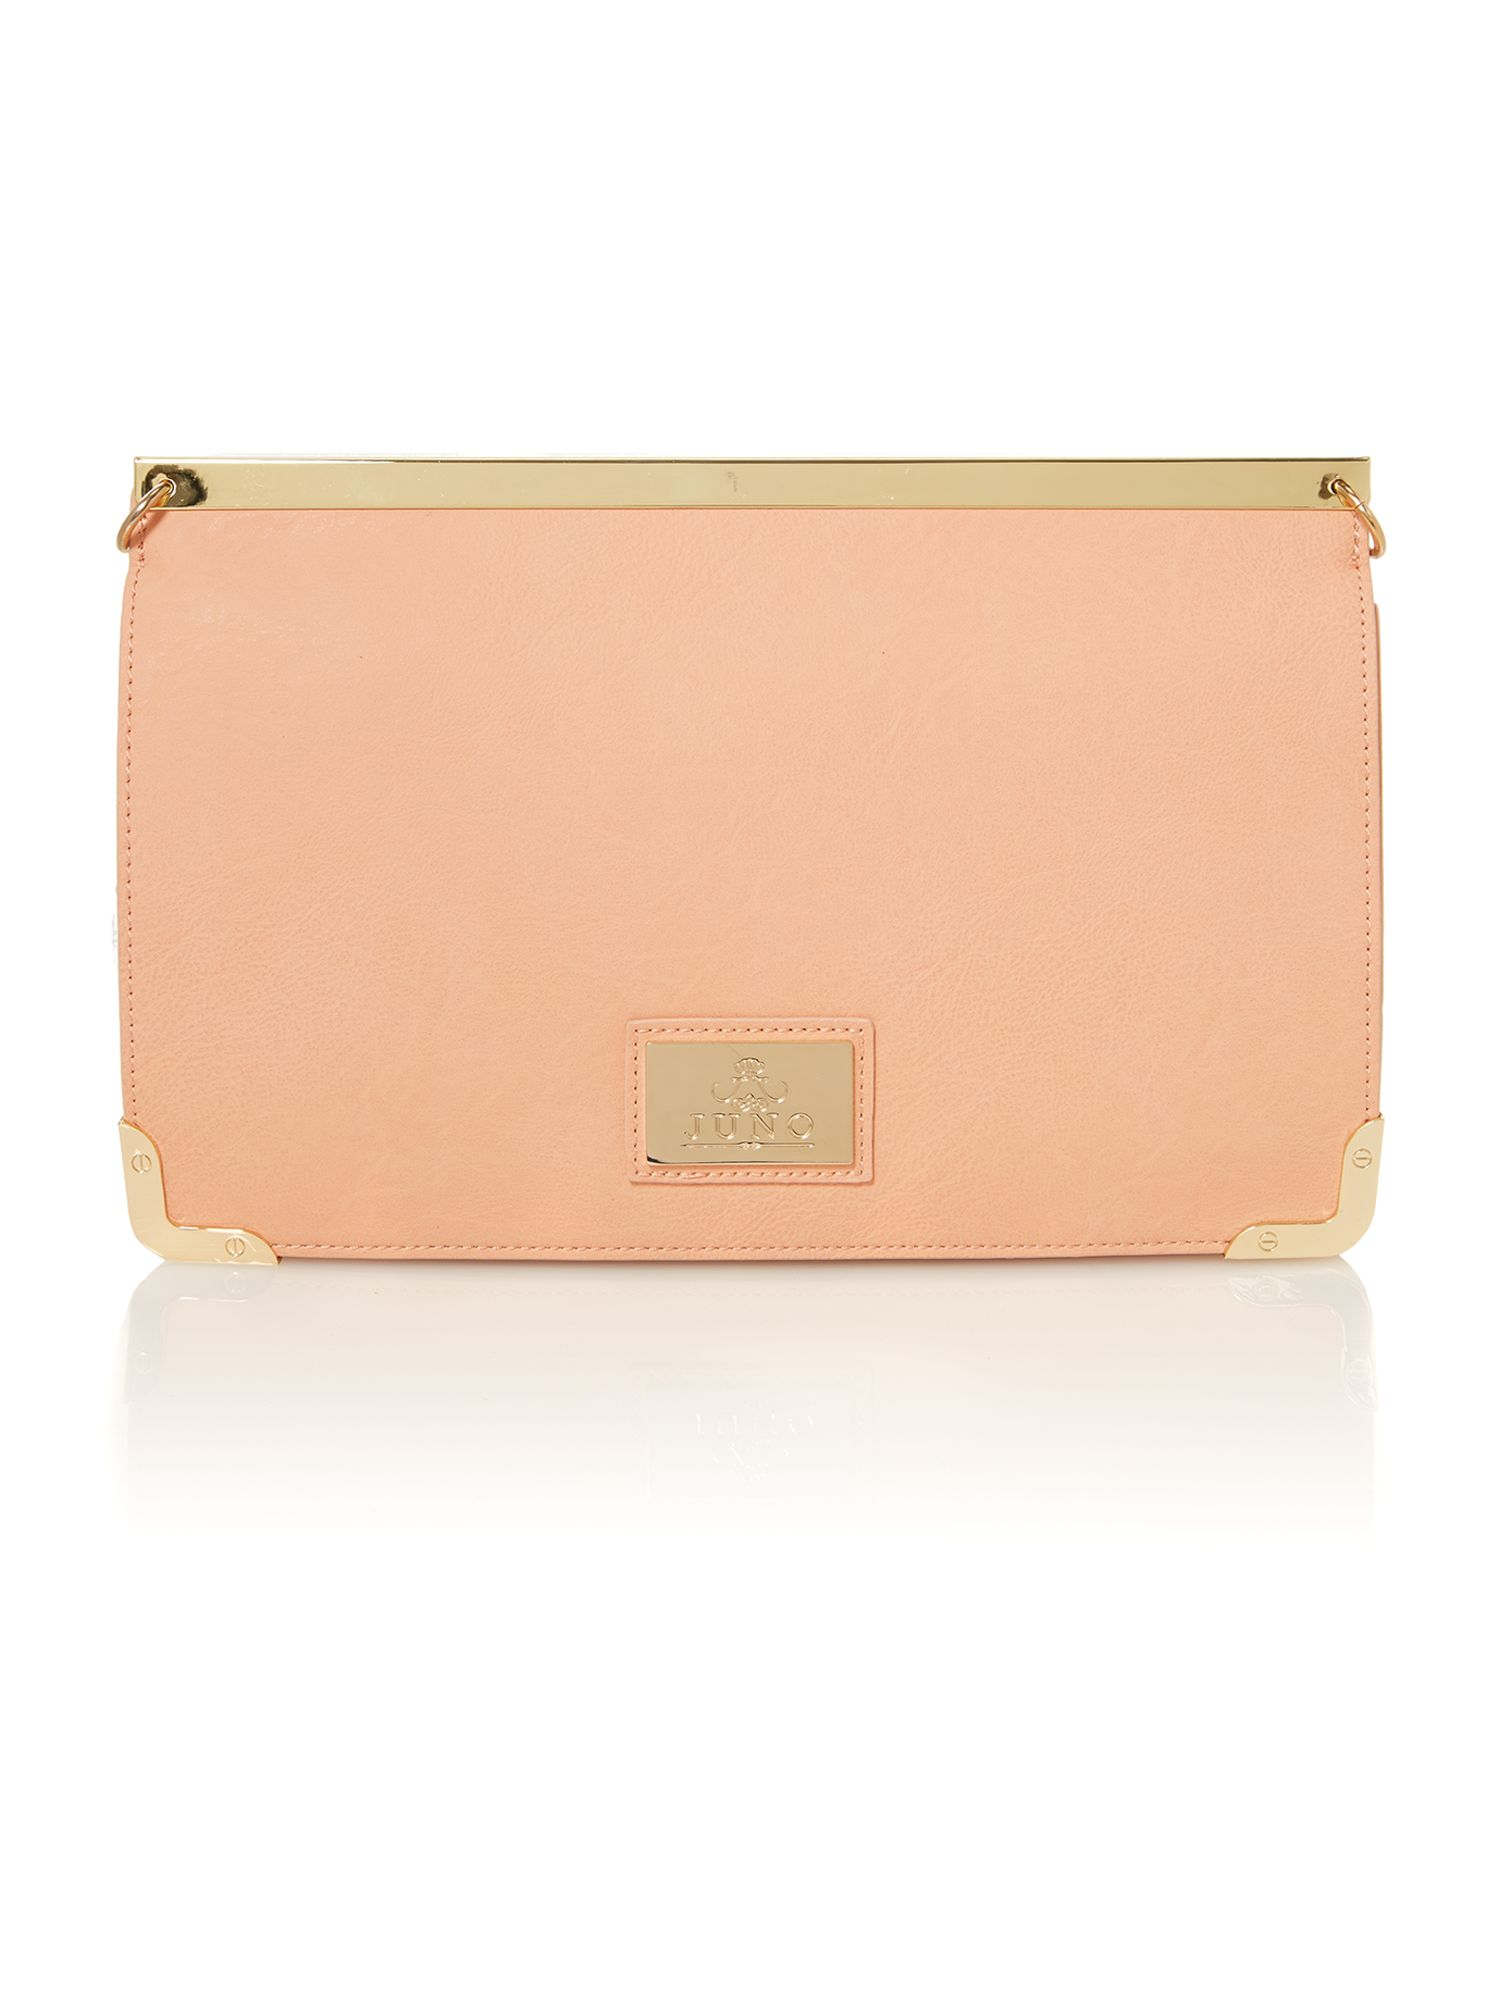 Coral small clutch bag